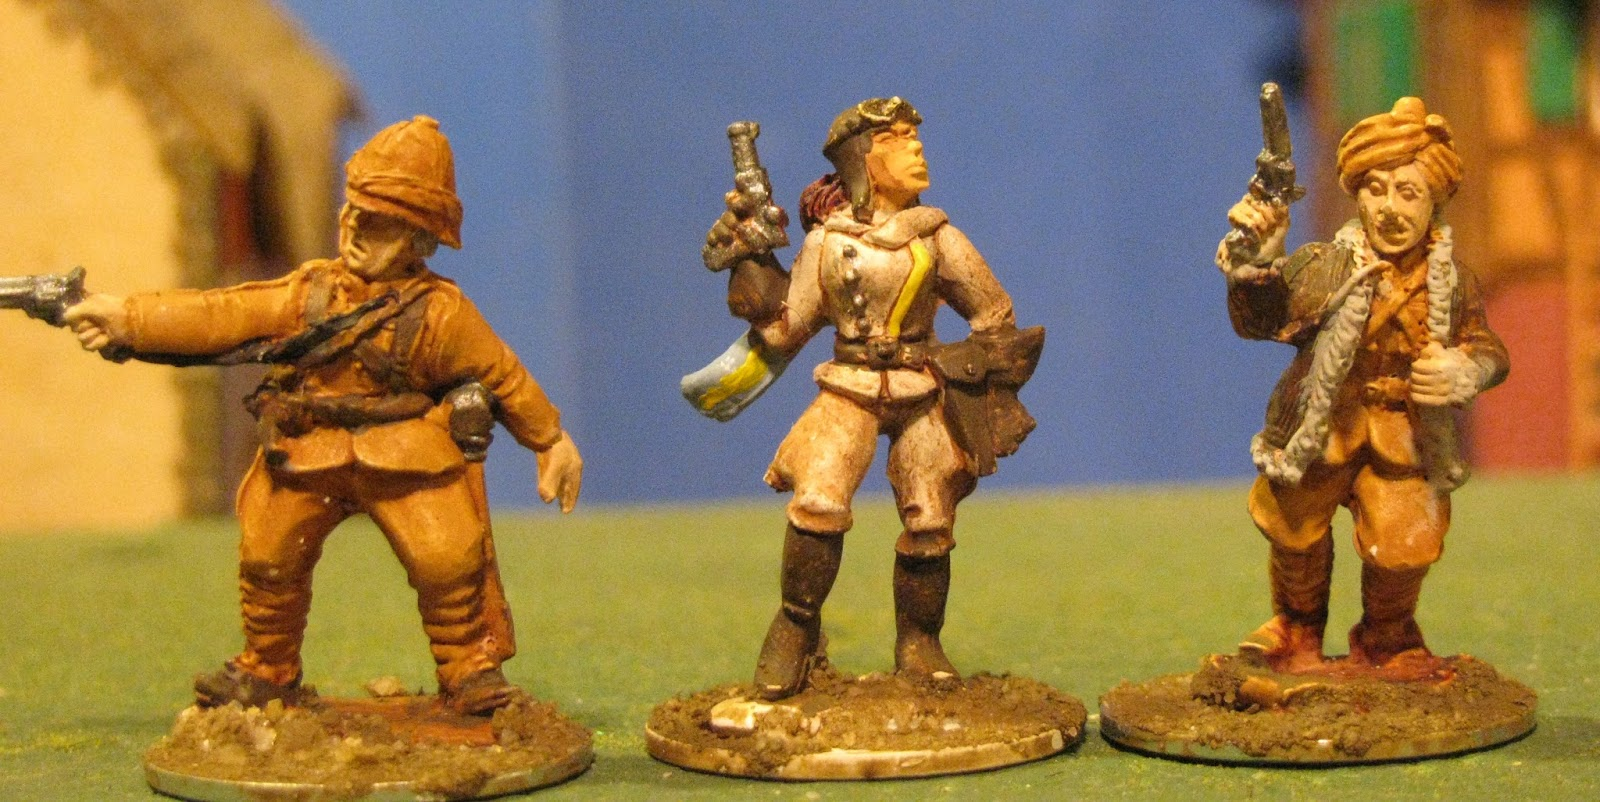 Fish Tales: A few figures for Pulp adventures snuck through the